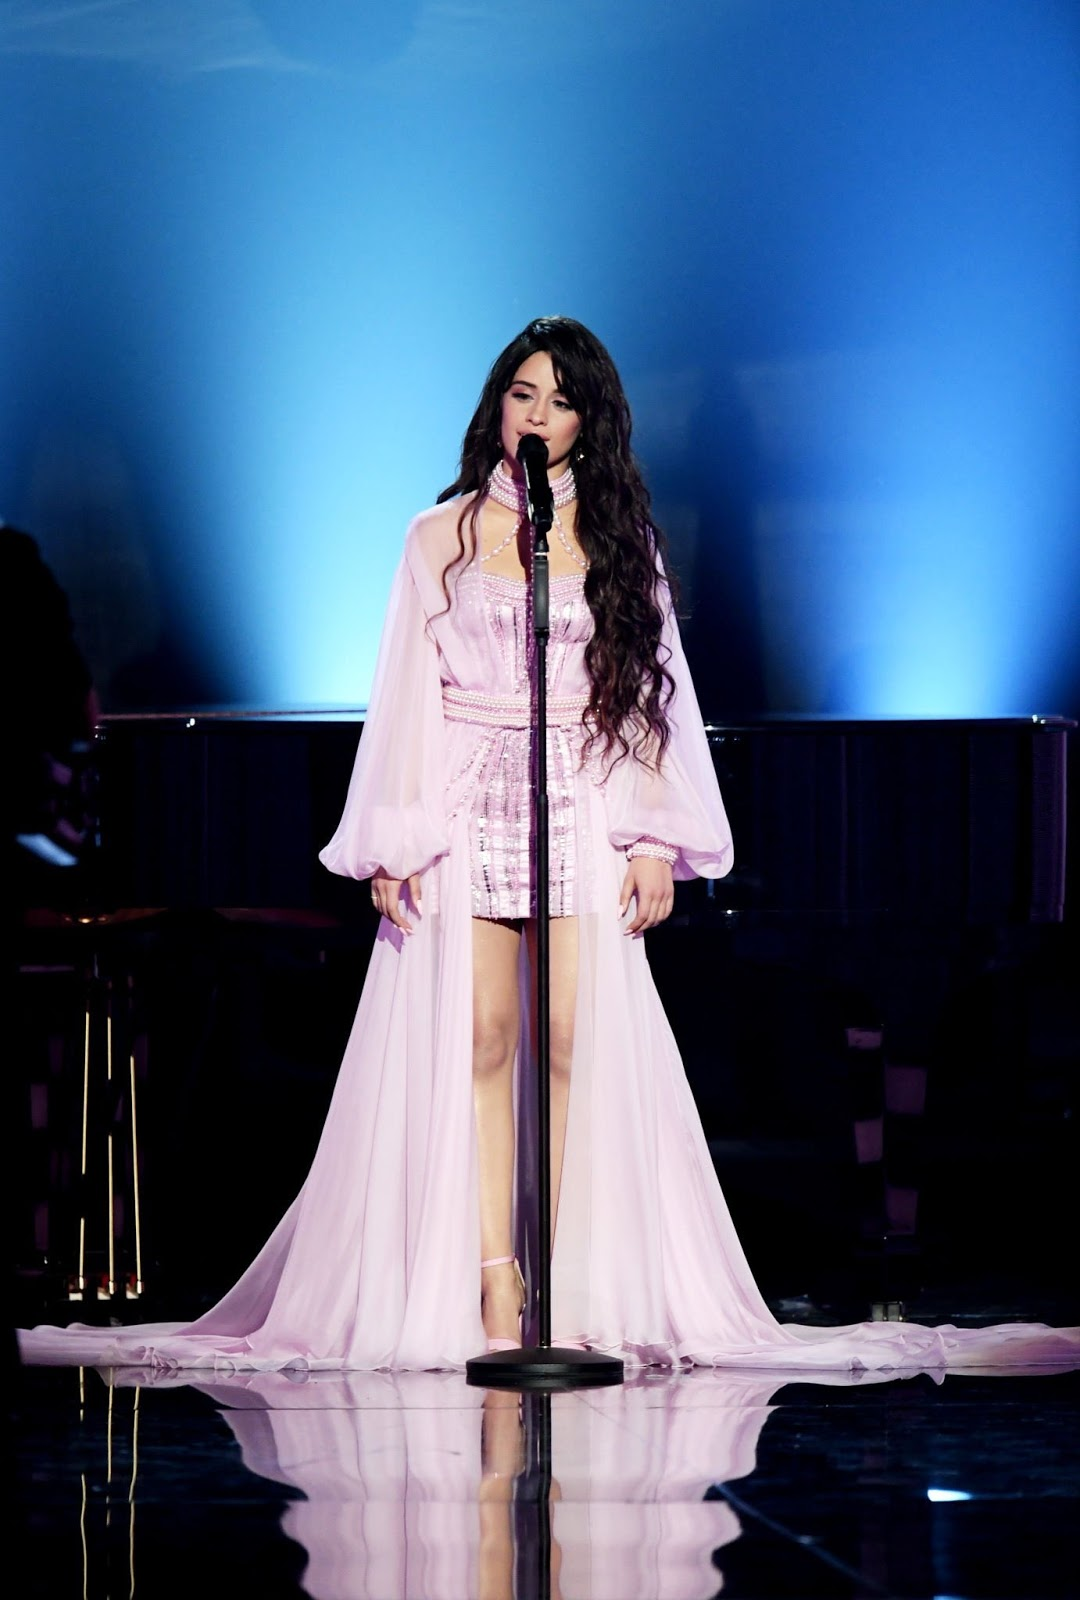 Camila Cabello Performs Emotional Tribute to Her Father at Grammys